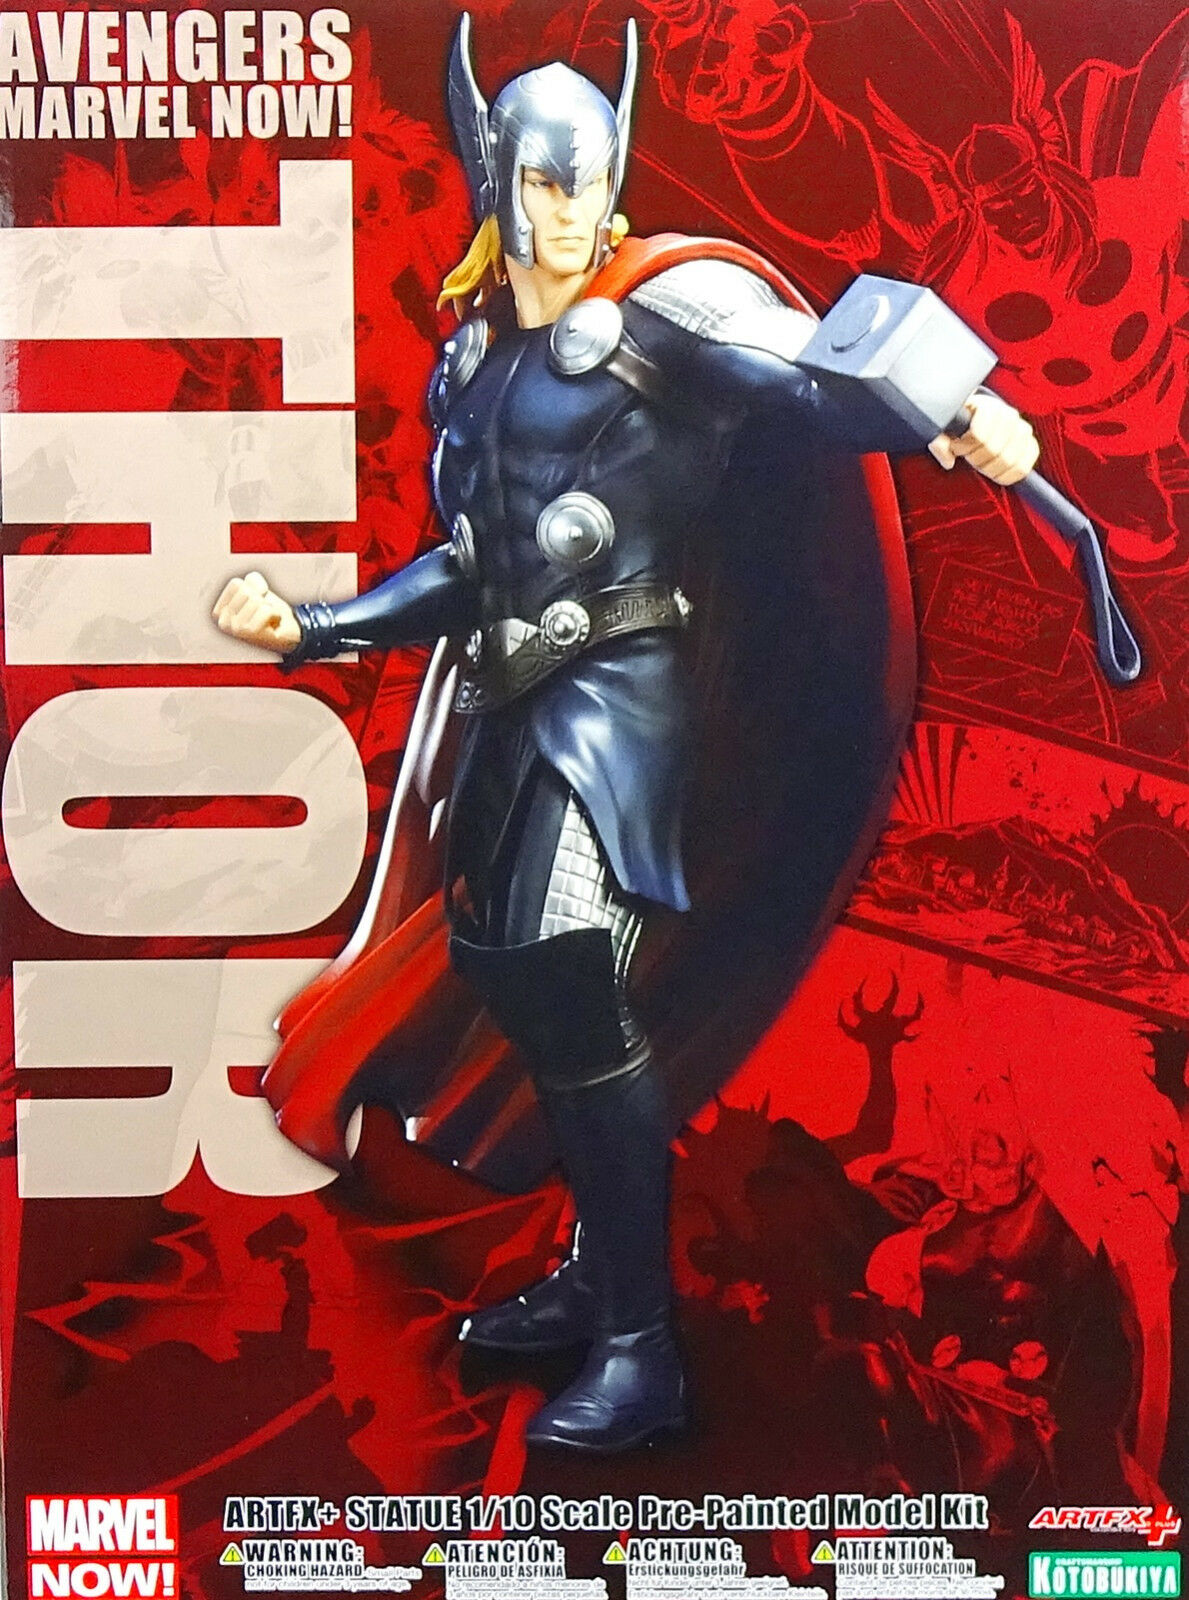 MARVEL NOW AVENGERS THOR ARTFX+ STATUE 1:10 SCALE PRE-PAINTED MODEL KOTOBUKIYA